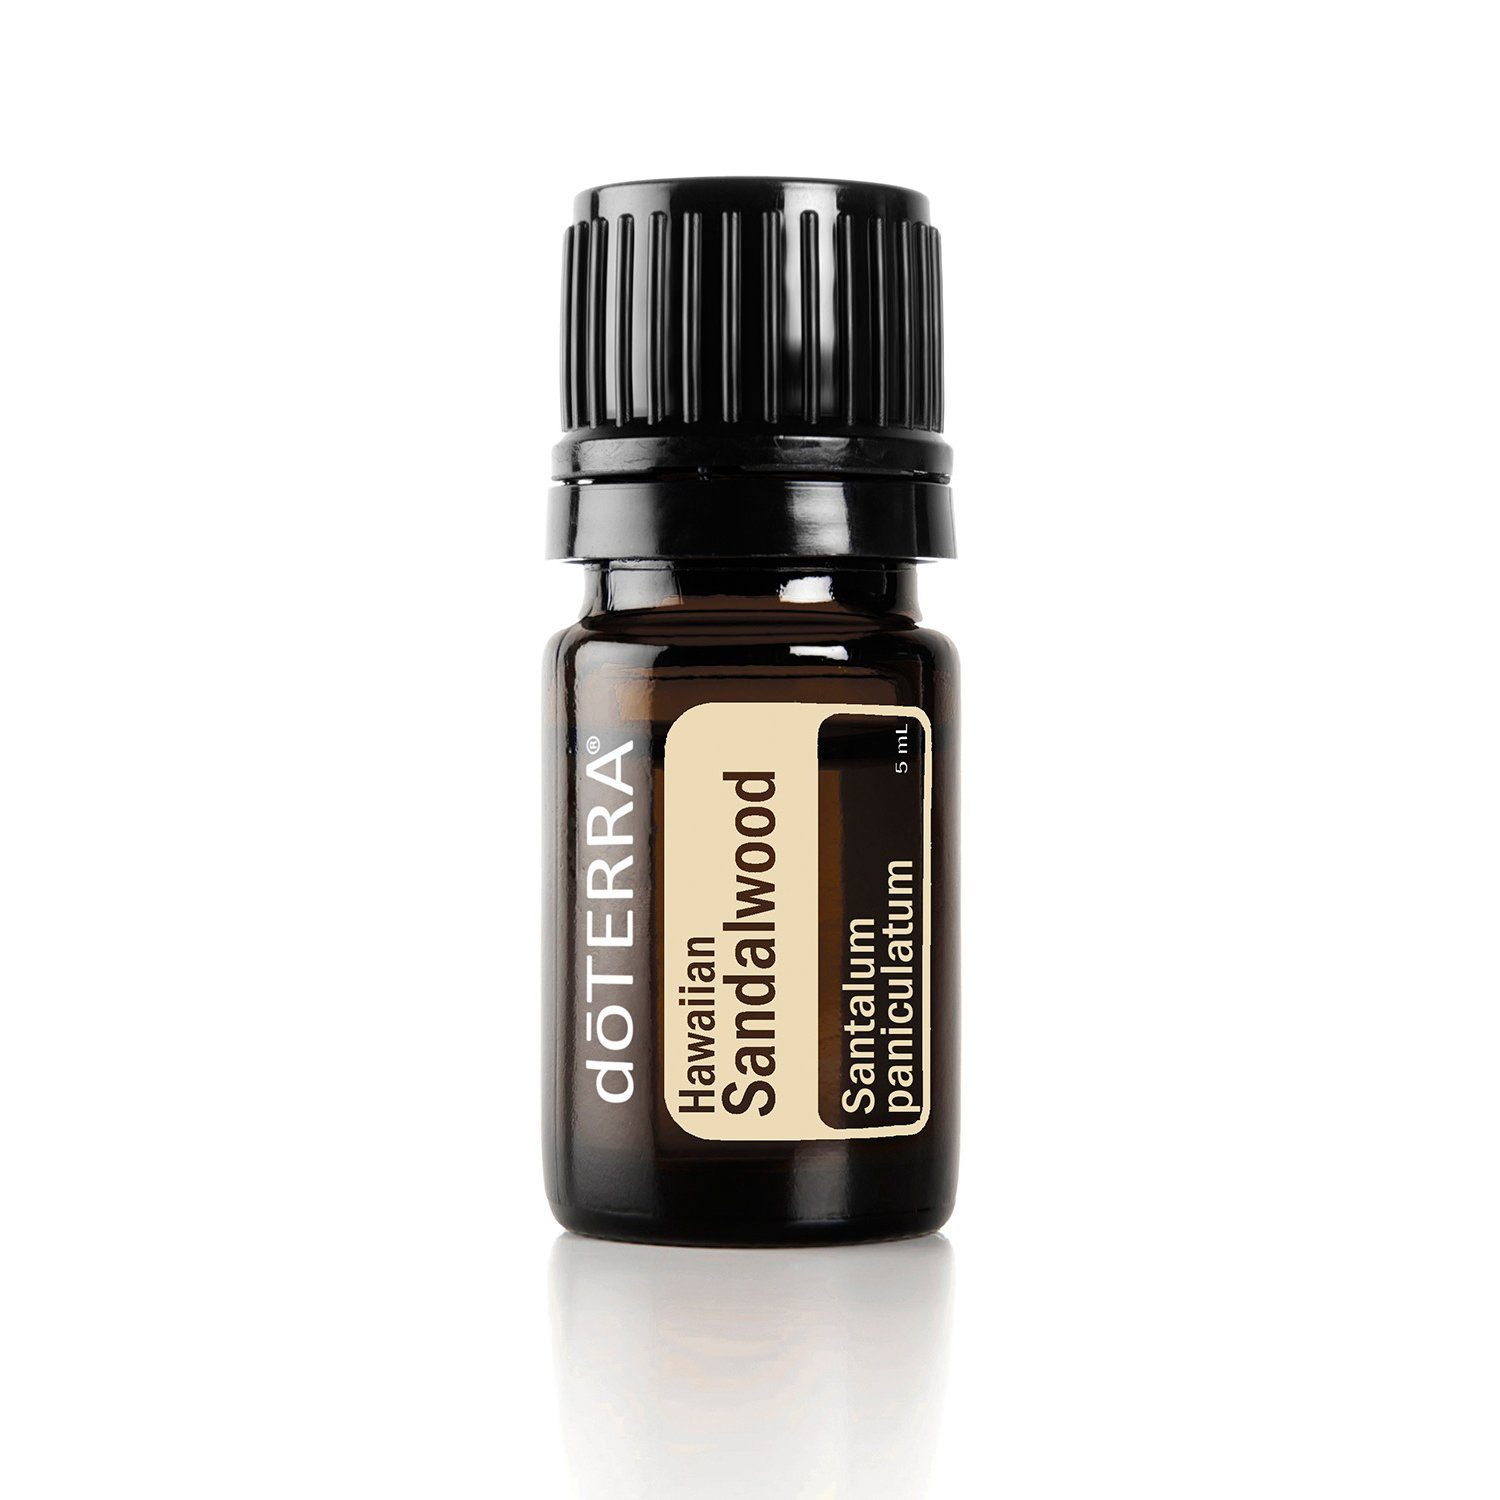 doTERRA - Hawaiian Sandalwood Essential Oil - Promotes Healthy-Looking, Smooth Skin, Enhances Mood, Grounding and Uplifting Properties for Meditation; for Diffusion, Internal, or Topical Use - 5 ml